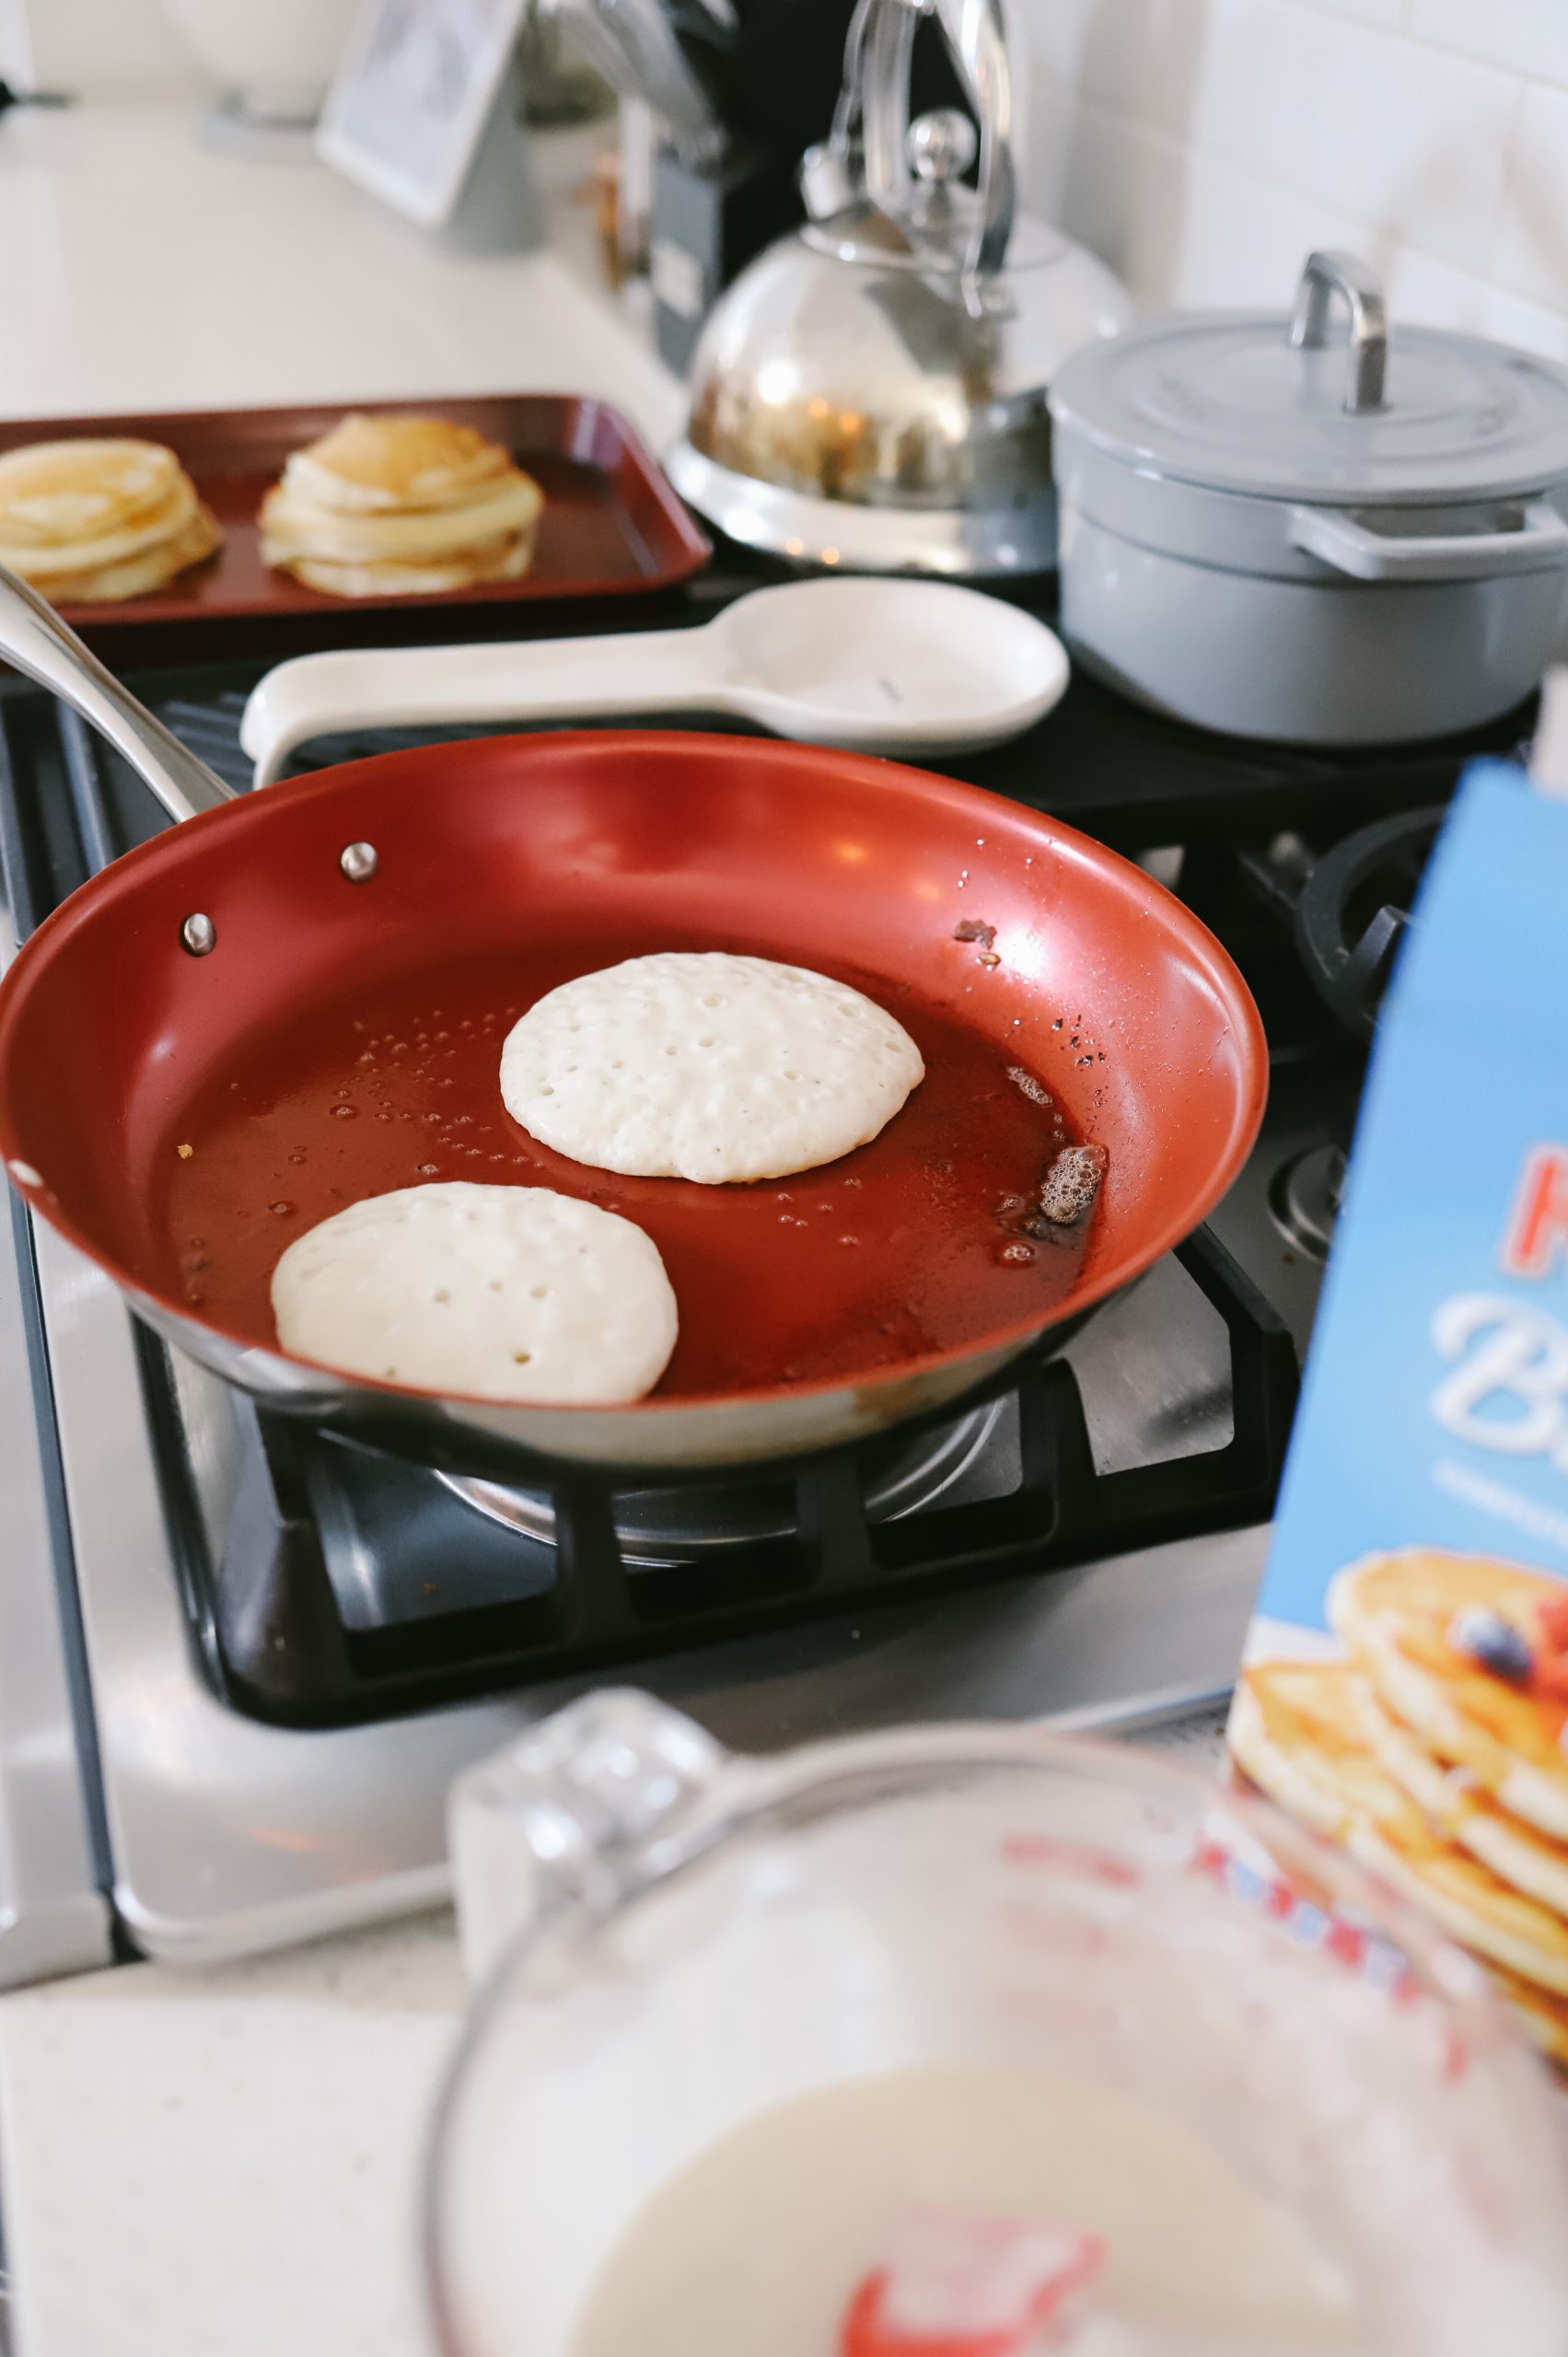 How to cook pancakes + The best Spring Breakfast Board |Pancake Board by popular Florida lifestyle blog, Fresh Mommy Blog: image of pancakes cooking on a gas range stove next to a box of Krusteaz pancake mix and a Pyrex measuring cup filled with pancake batter.